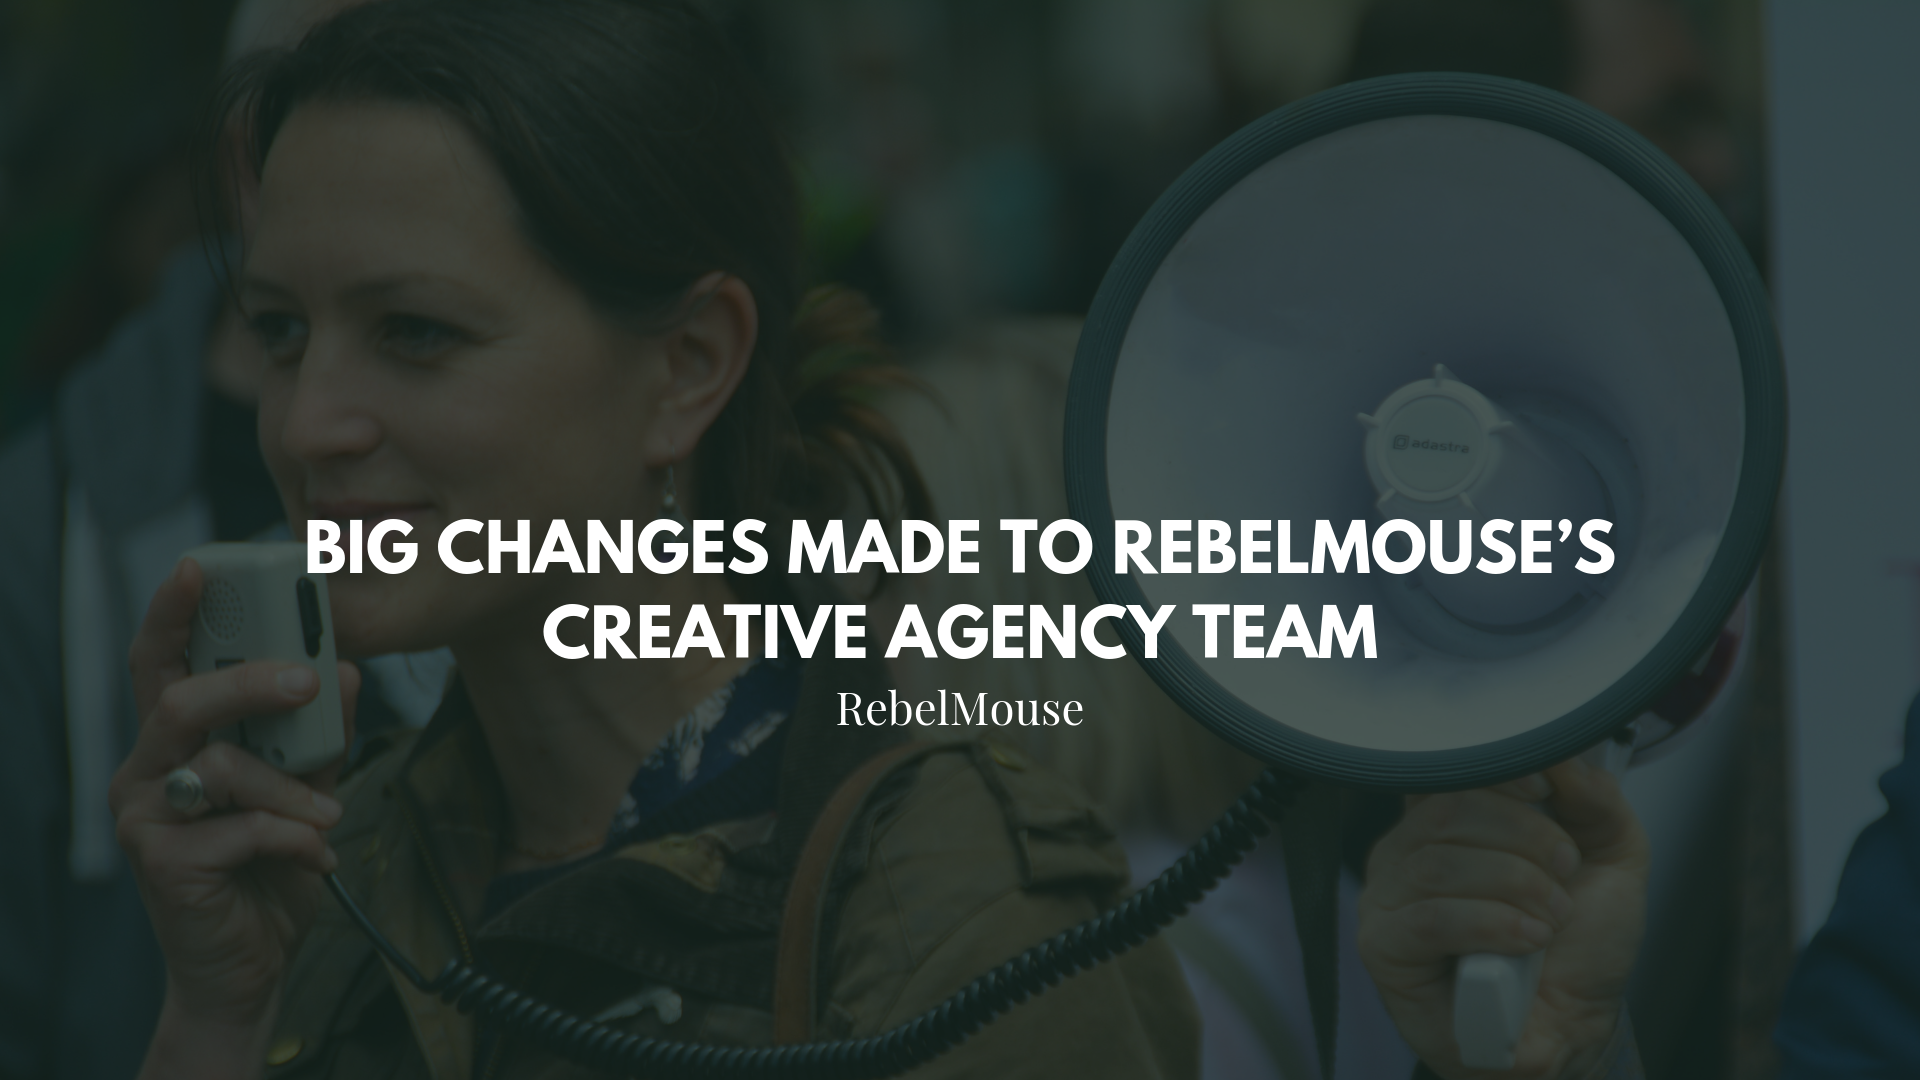 Announcement: Big Changes Made to RebelMouse's Creative Agency Team